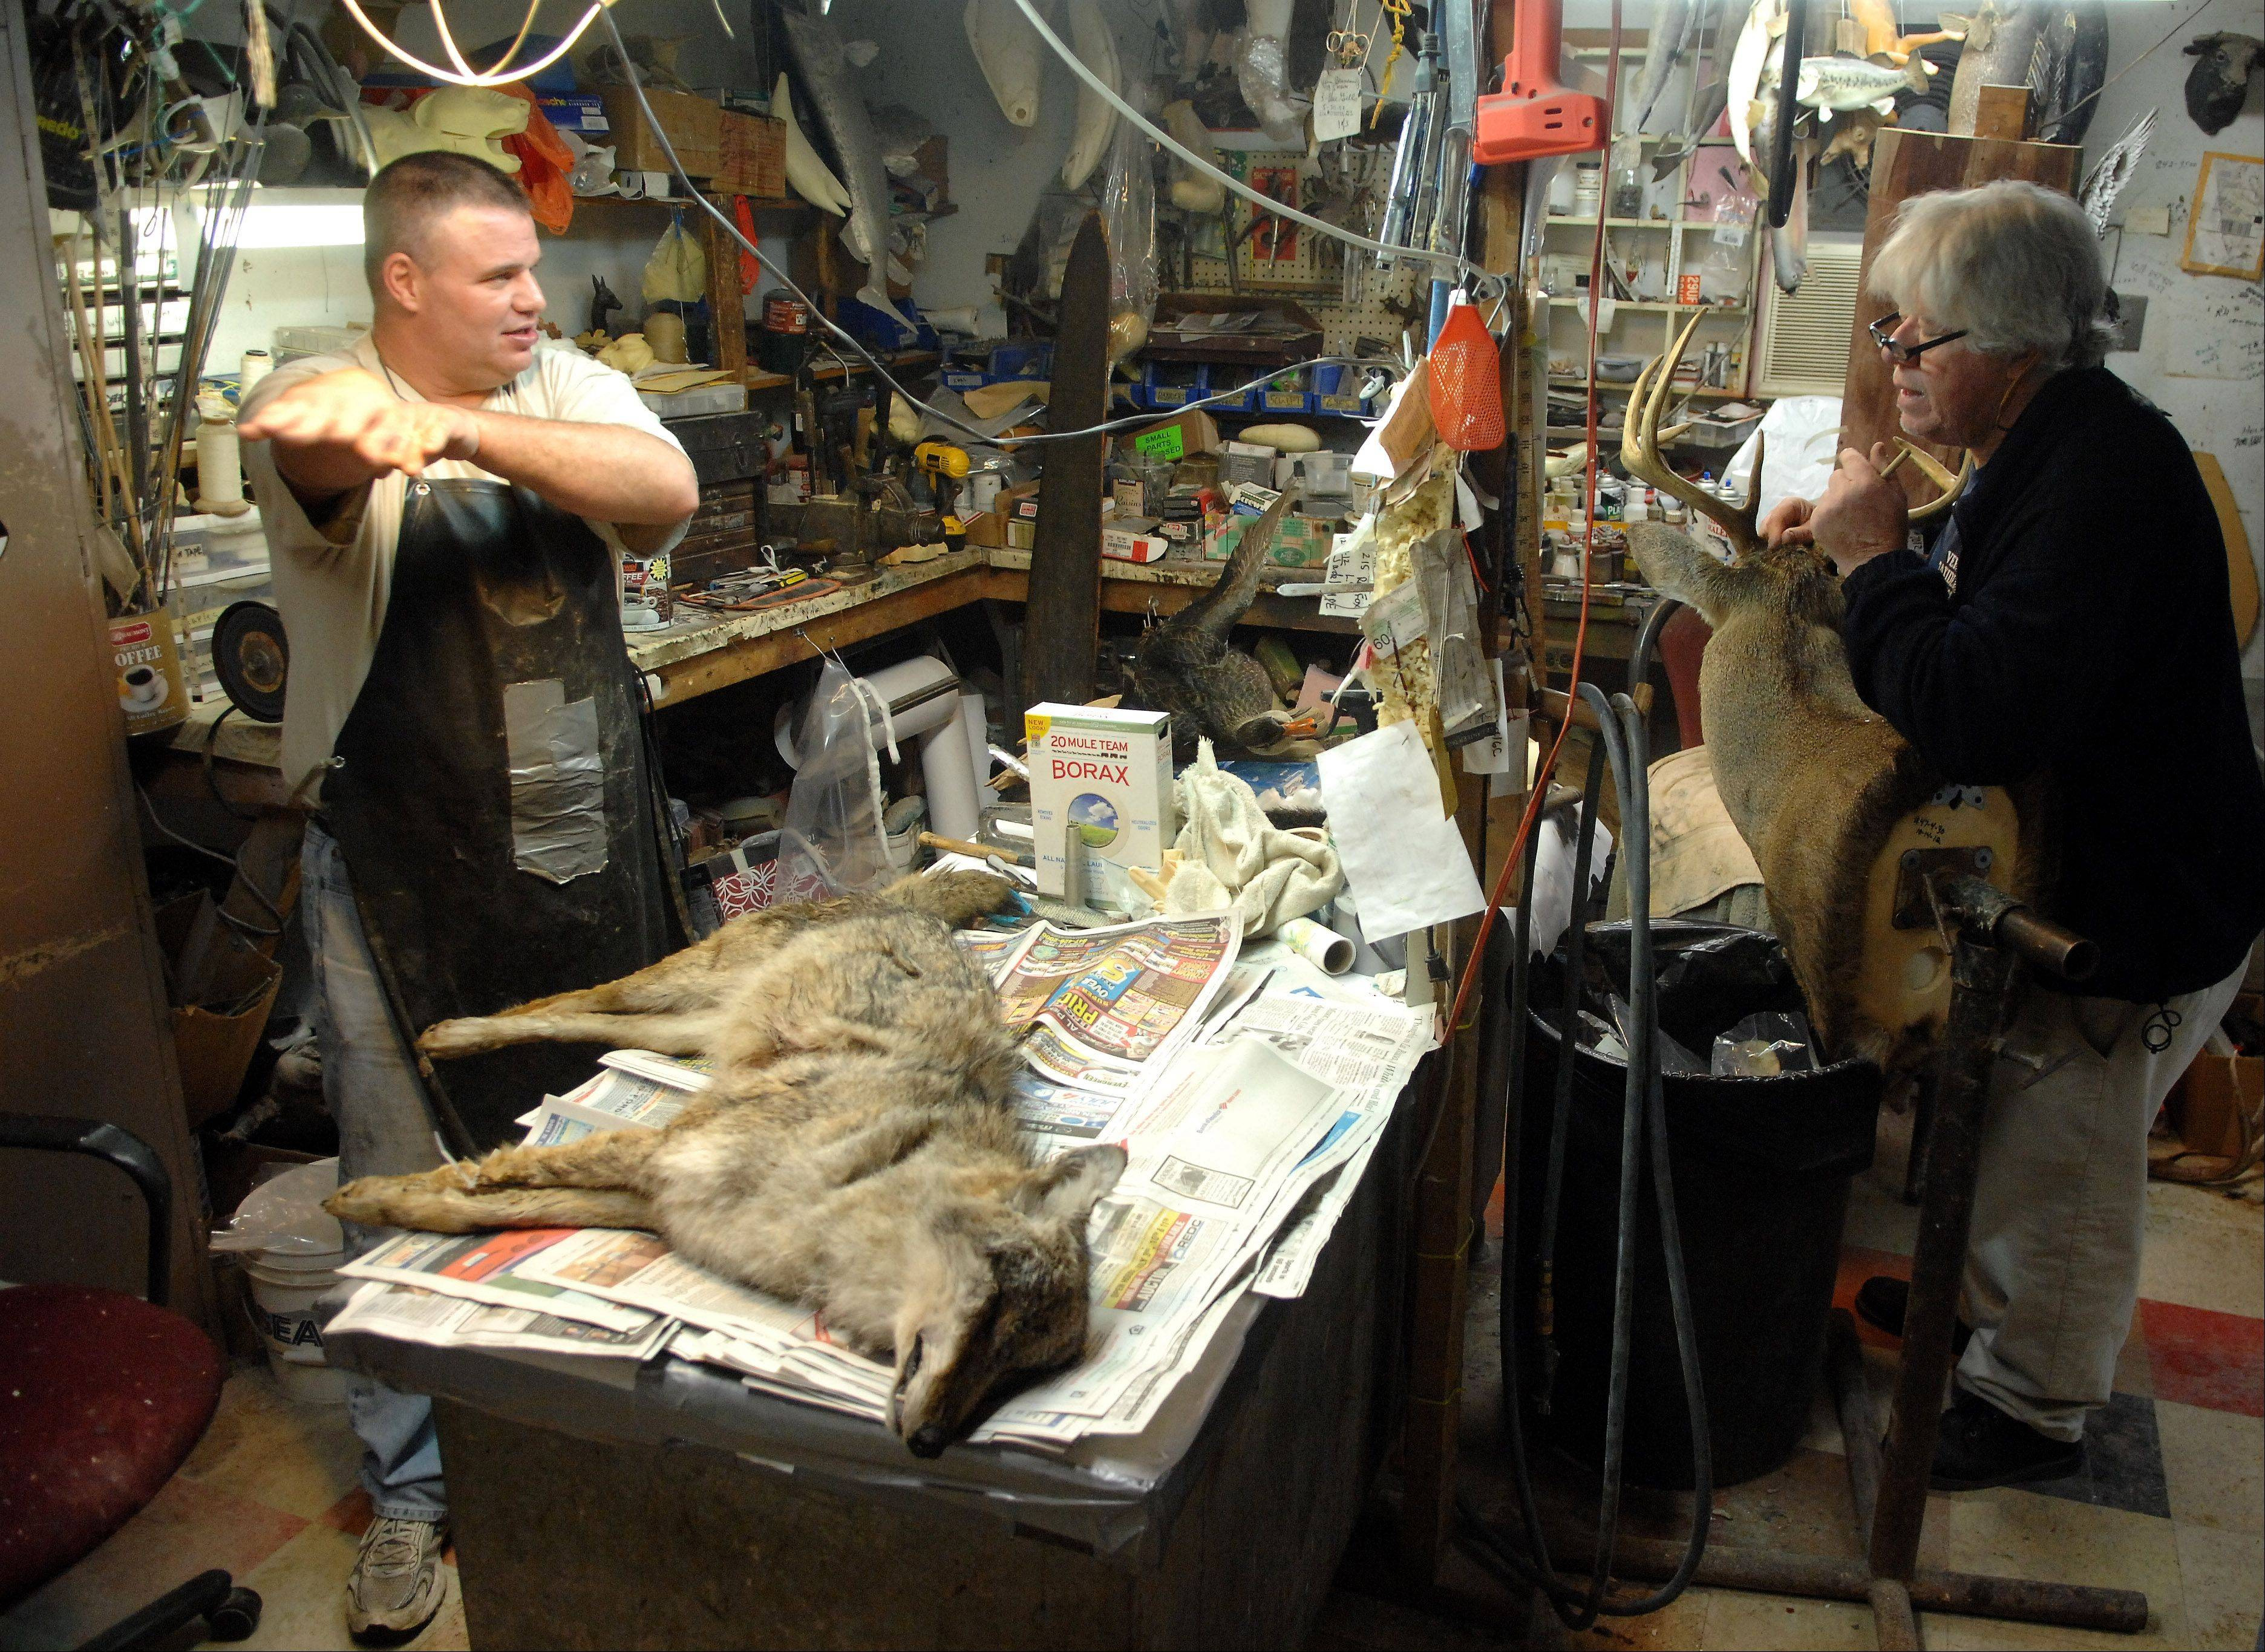 Vern Brancamp, right, helps his son-in-law Jerome Mueller before Mueller begins the process of skinning a coyote that a customer brought in that morning.